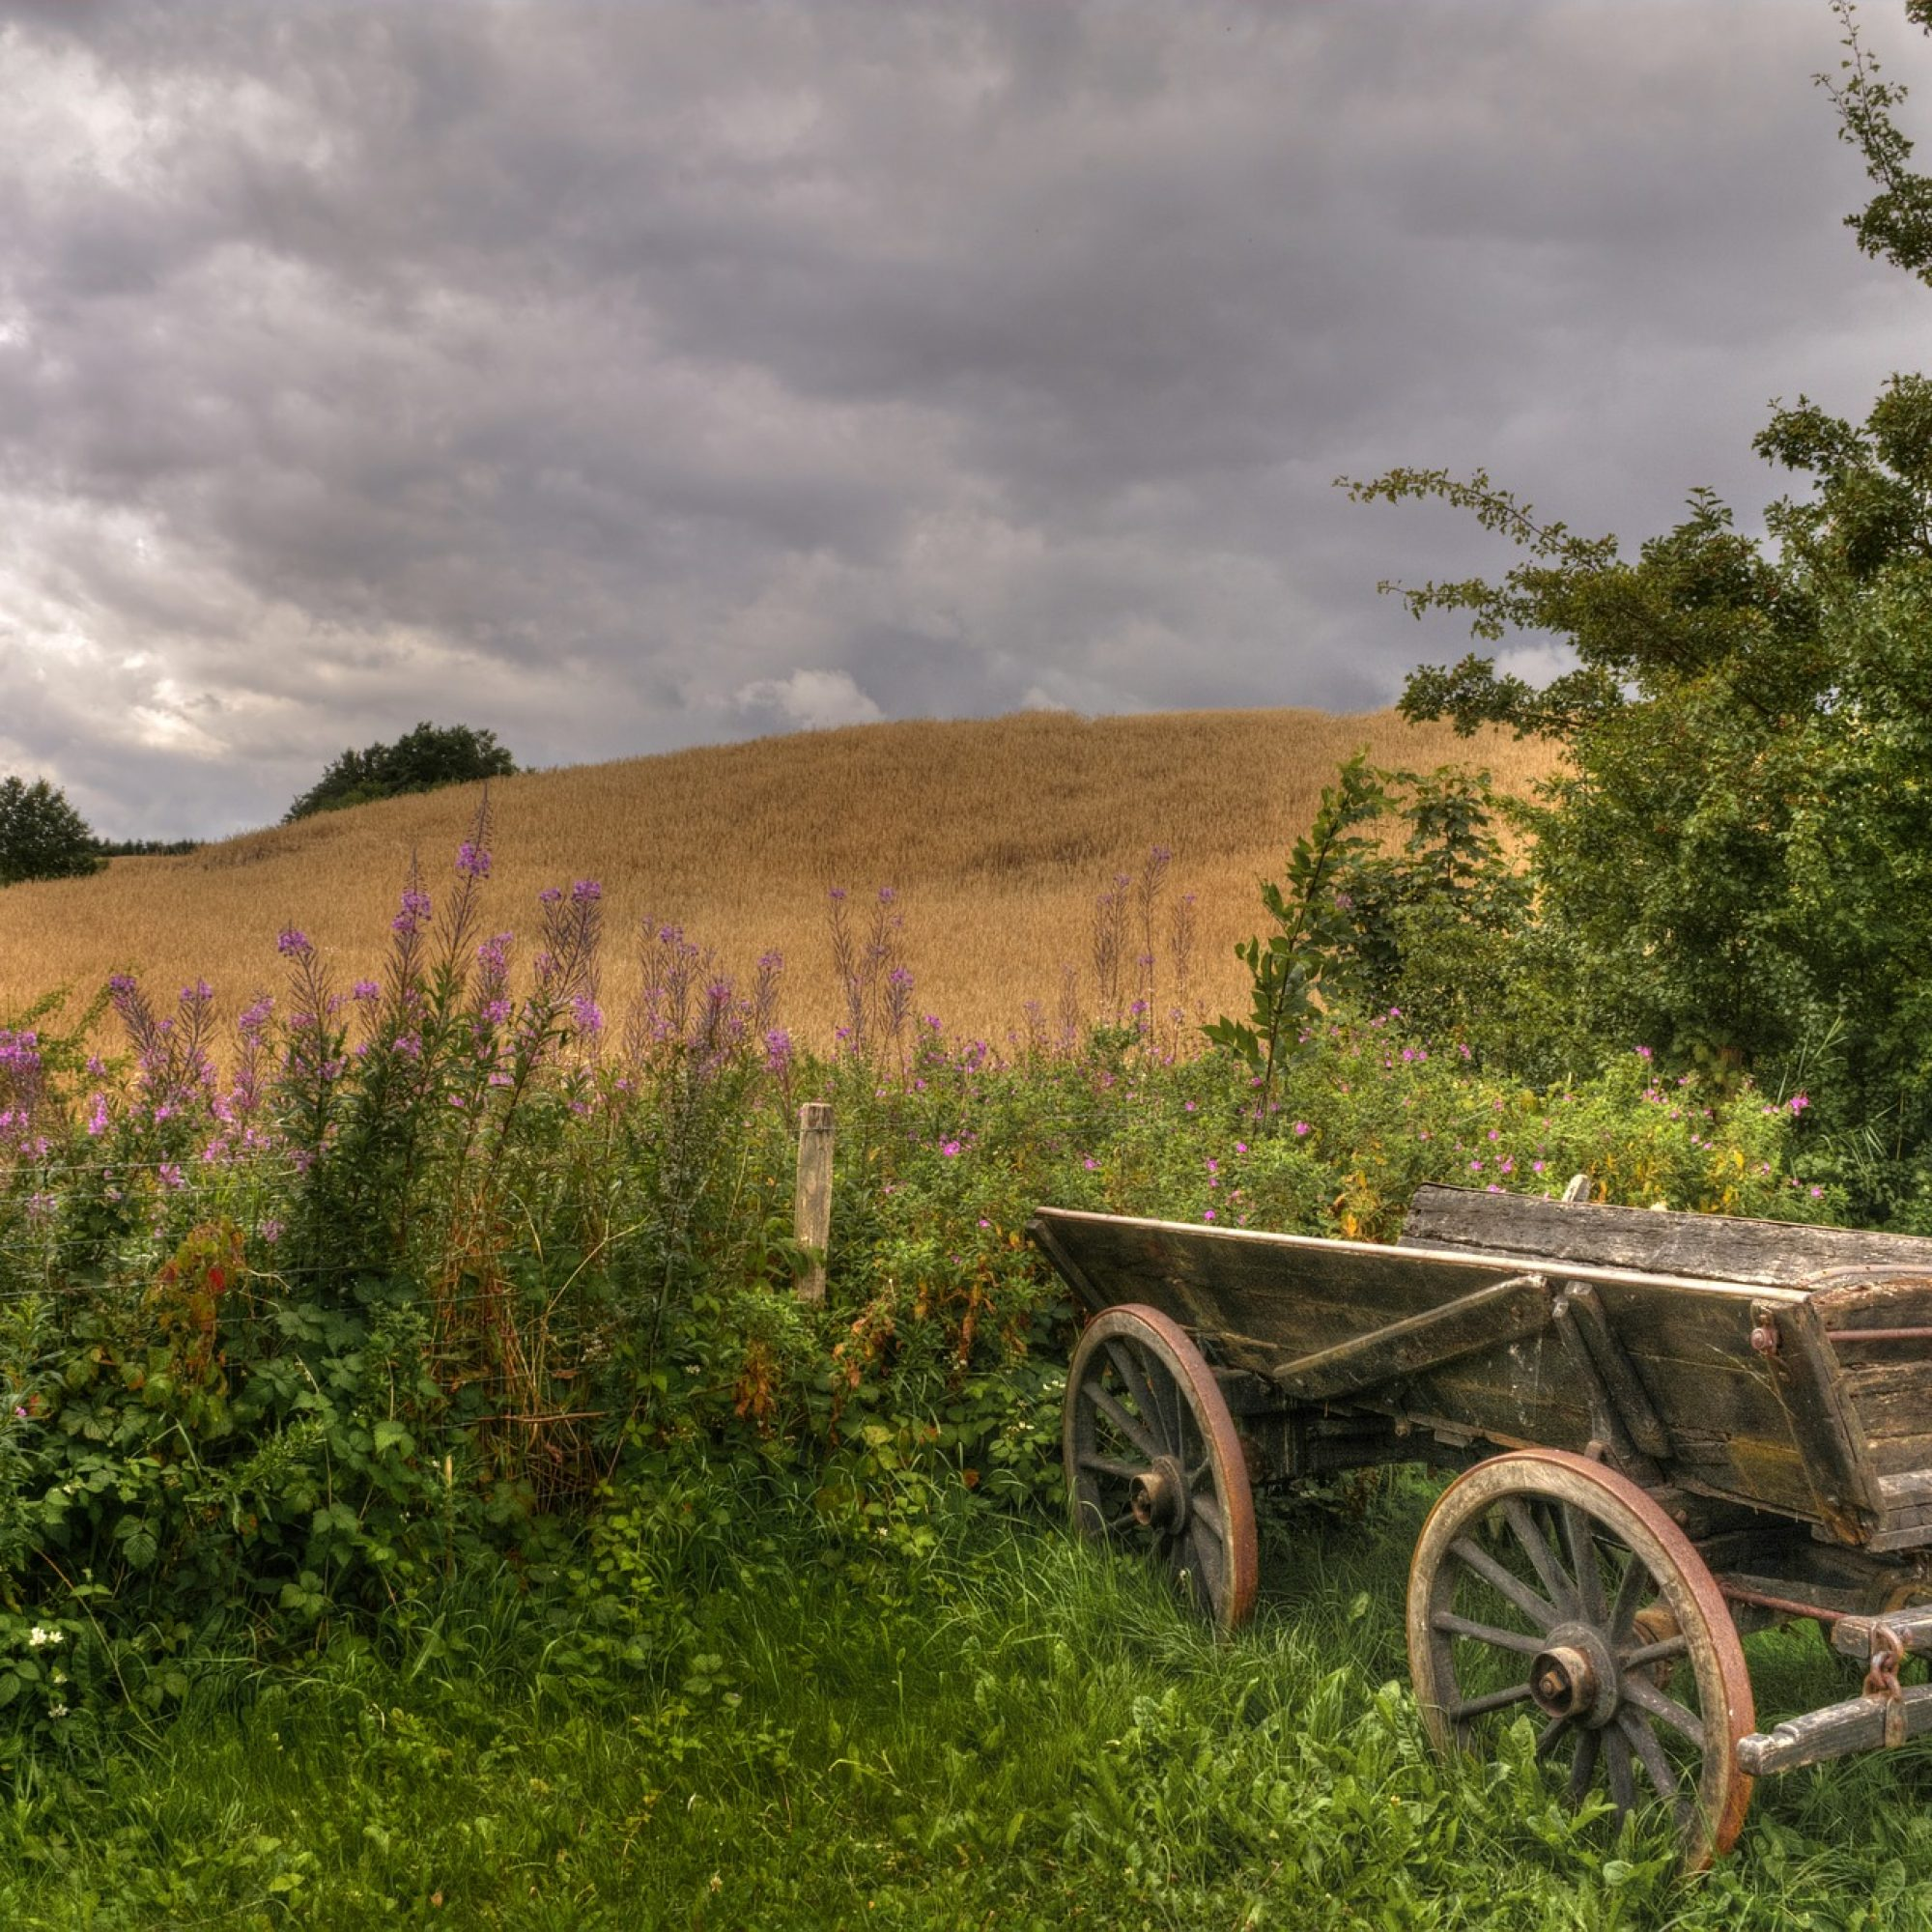 agriculture-3607035_1920